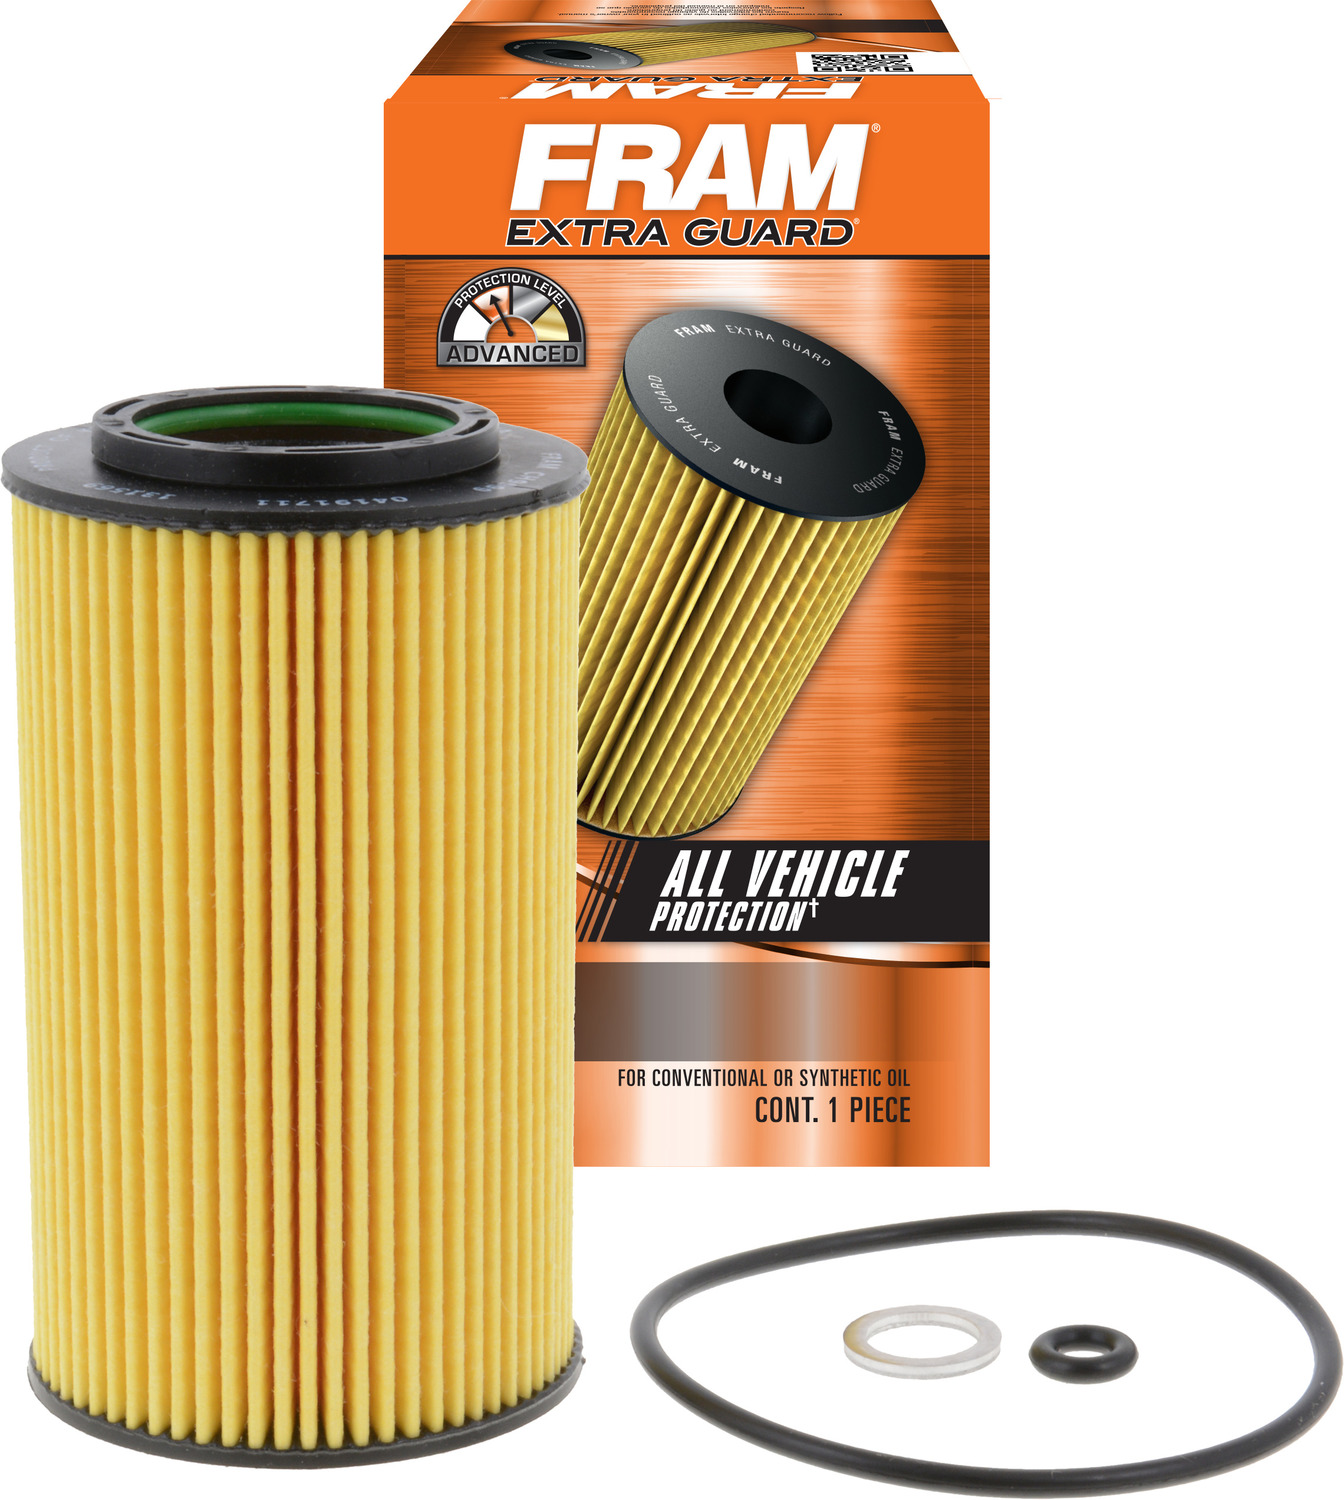 FRAM Extra Guard Oil Filter, CH9999